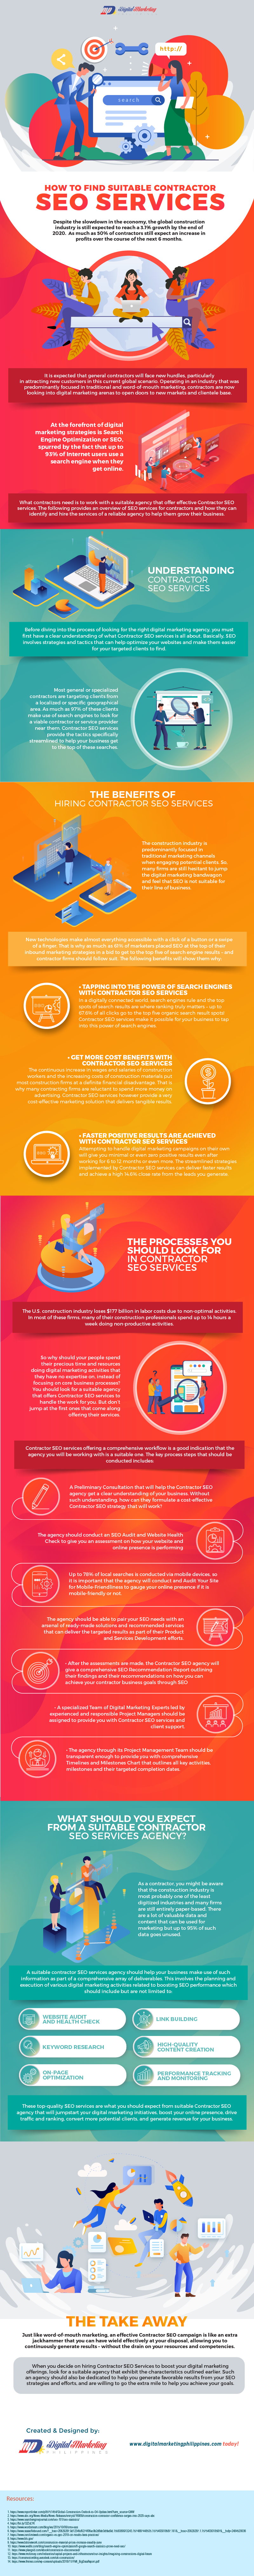 Contractor SEO Services Infographic